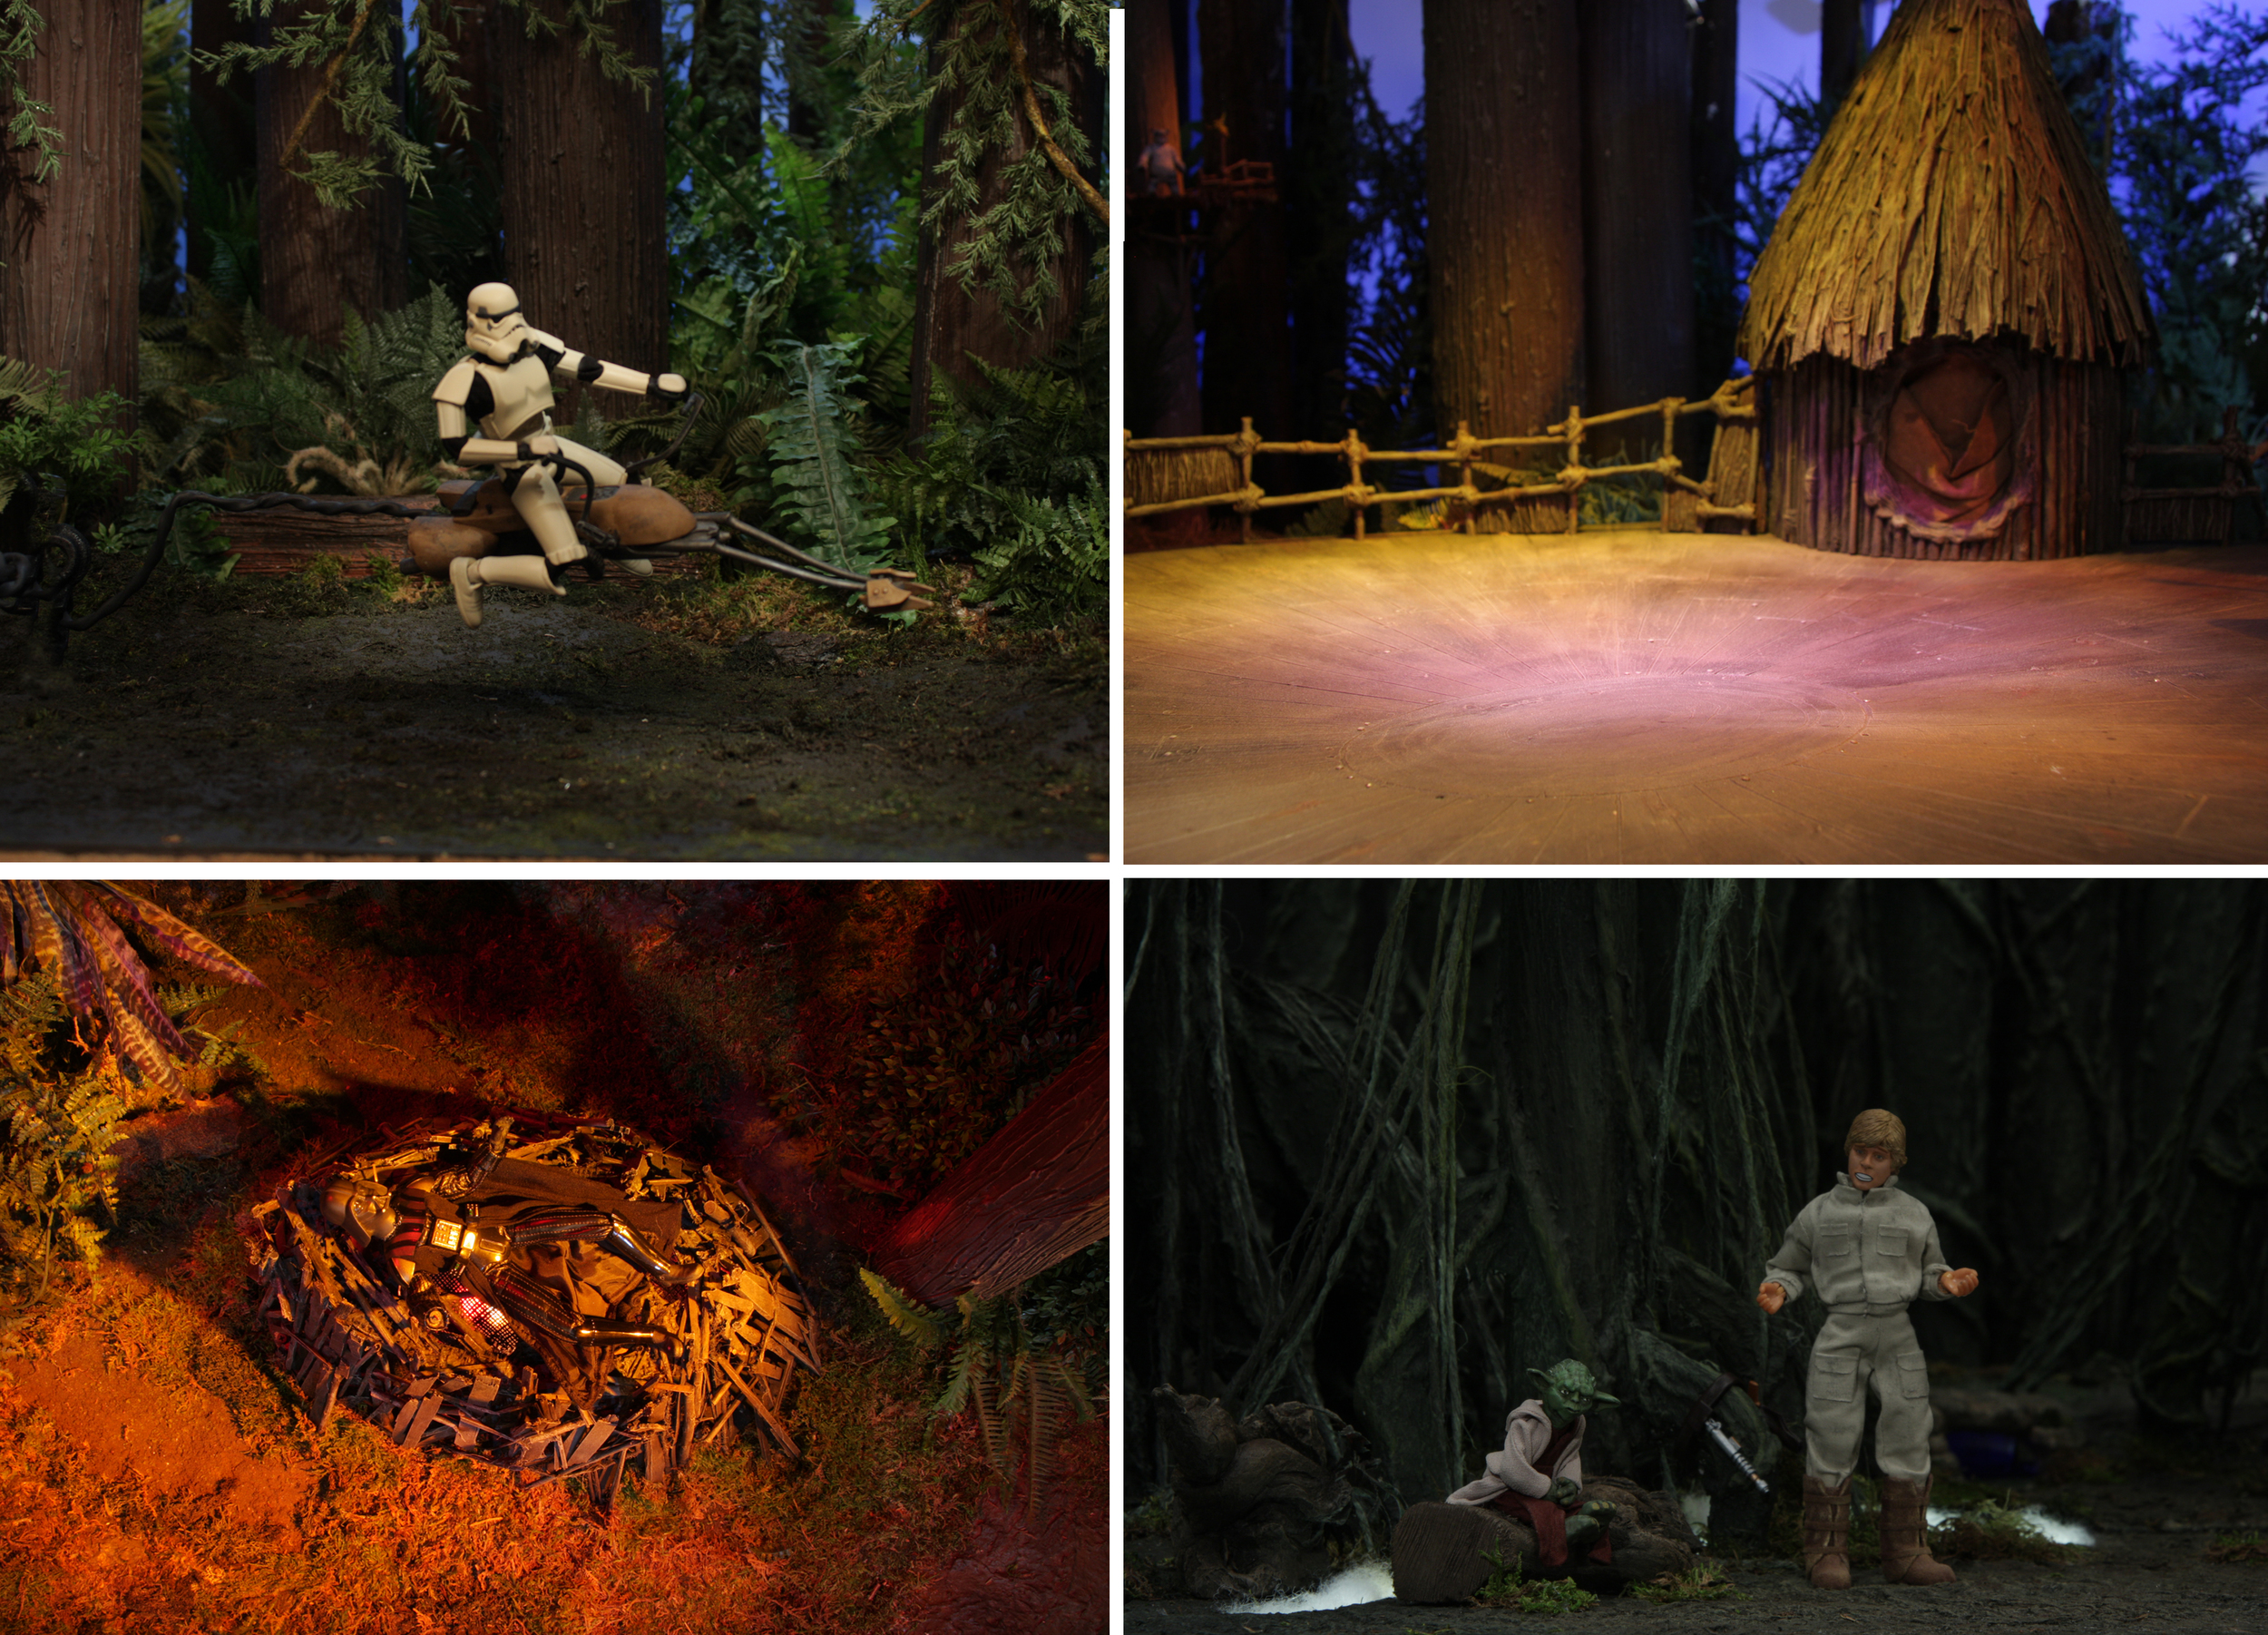 Robot Chicken Star Wars 3 Image 61.jpg